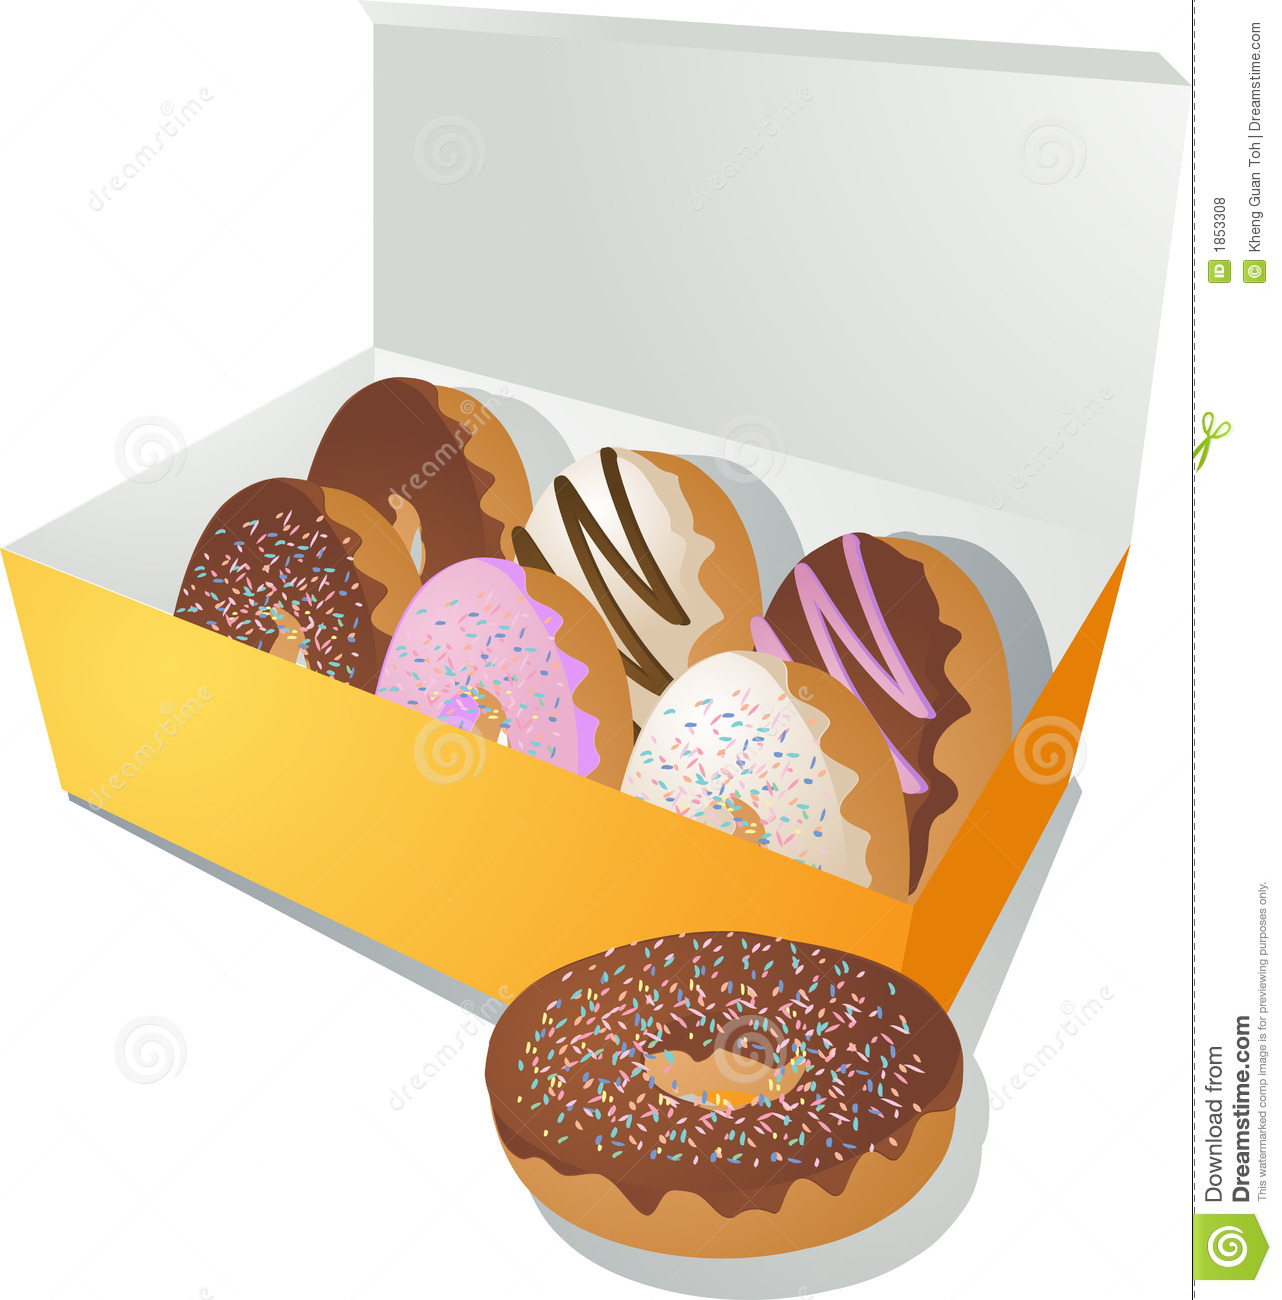 Box Of Donuts Clipart Donuts In A Box Royalty Free